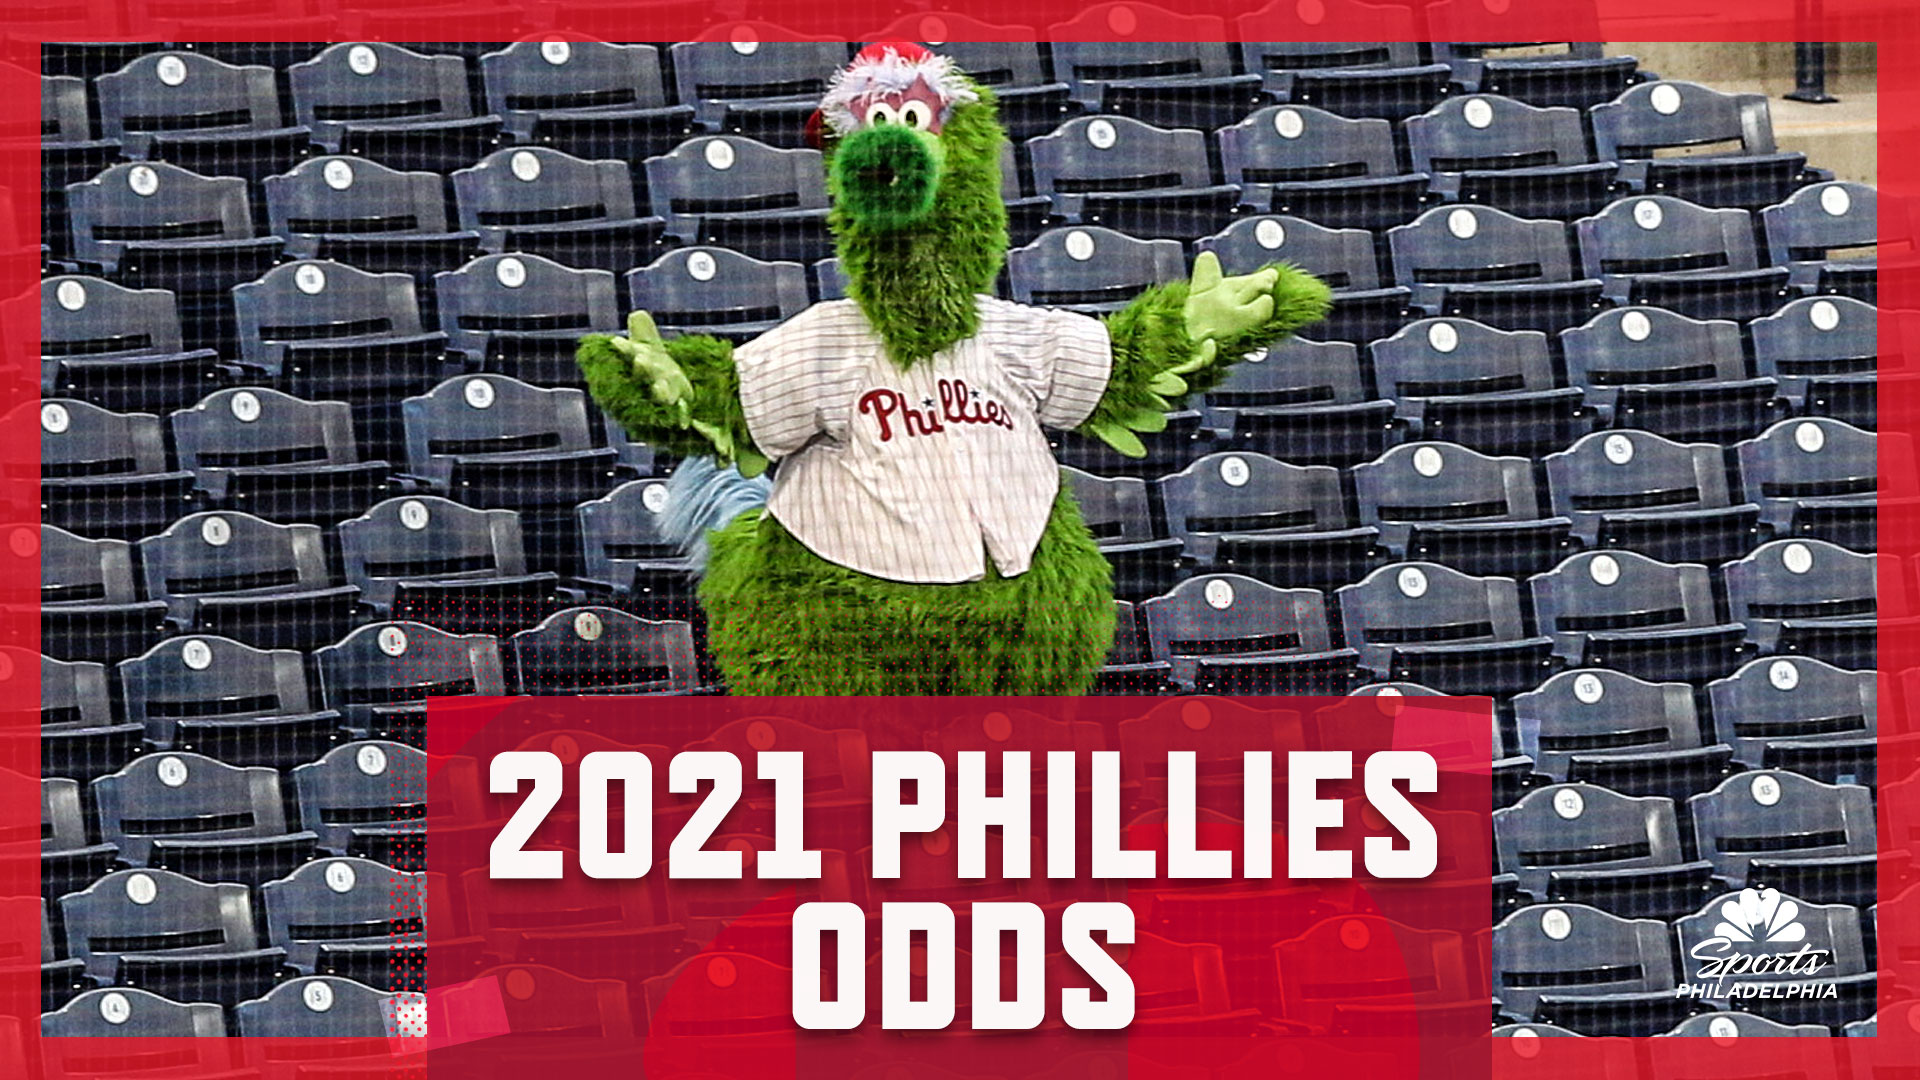 Low odds for the Philadelphia Phillies in the 2021 season